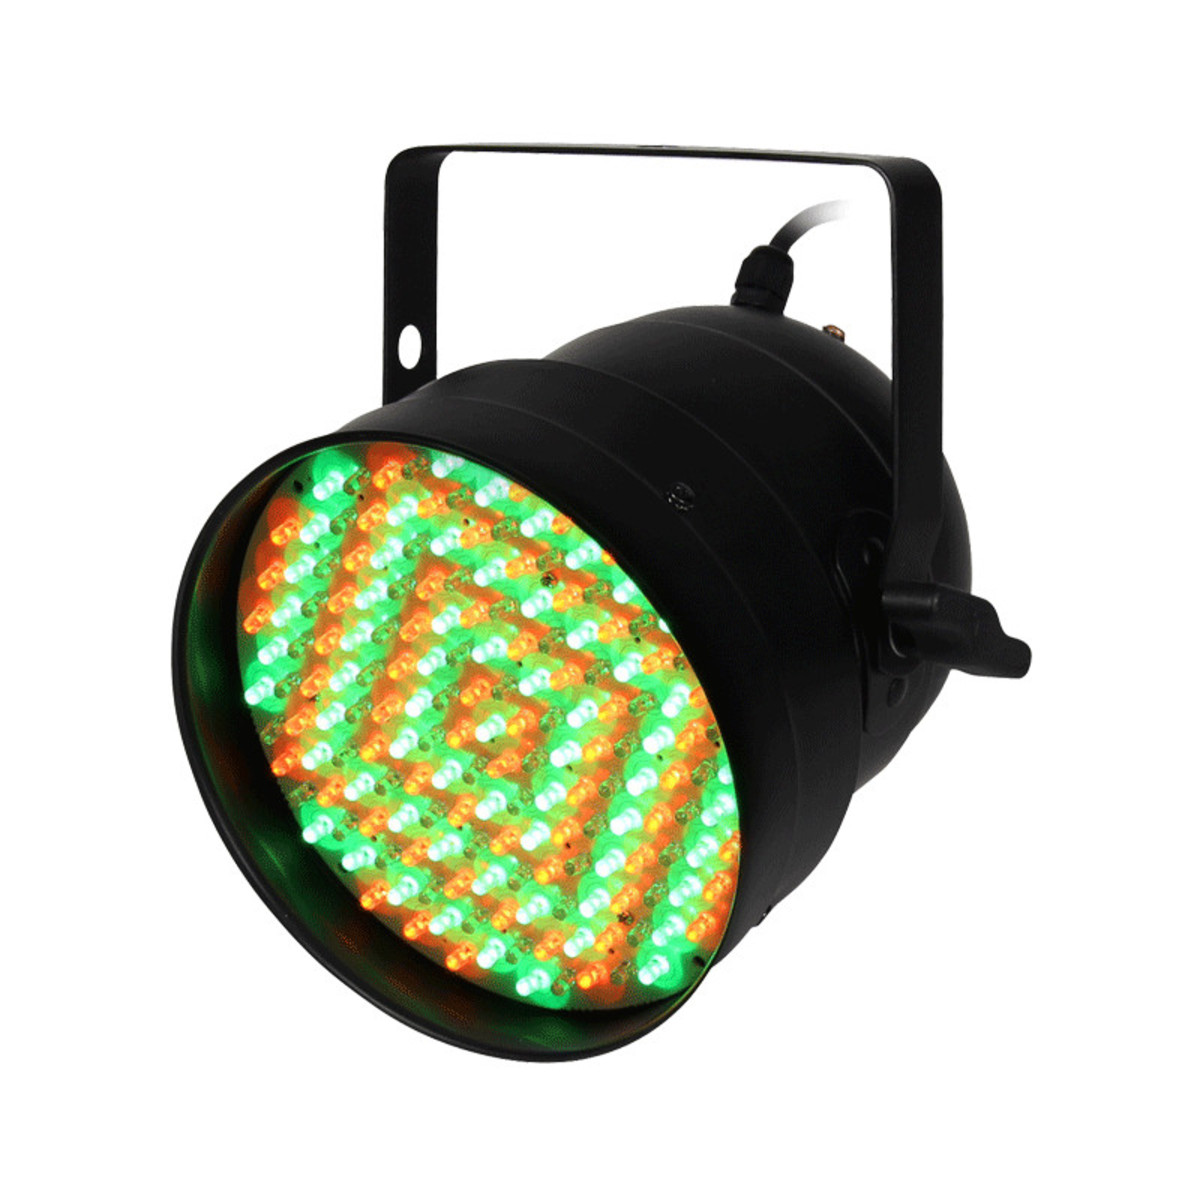 Image of Equinox Party Par LED Par 56 Can Black Housing